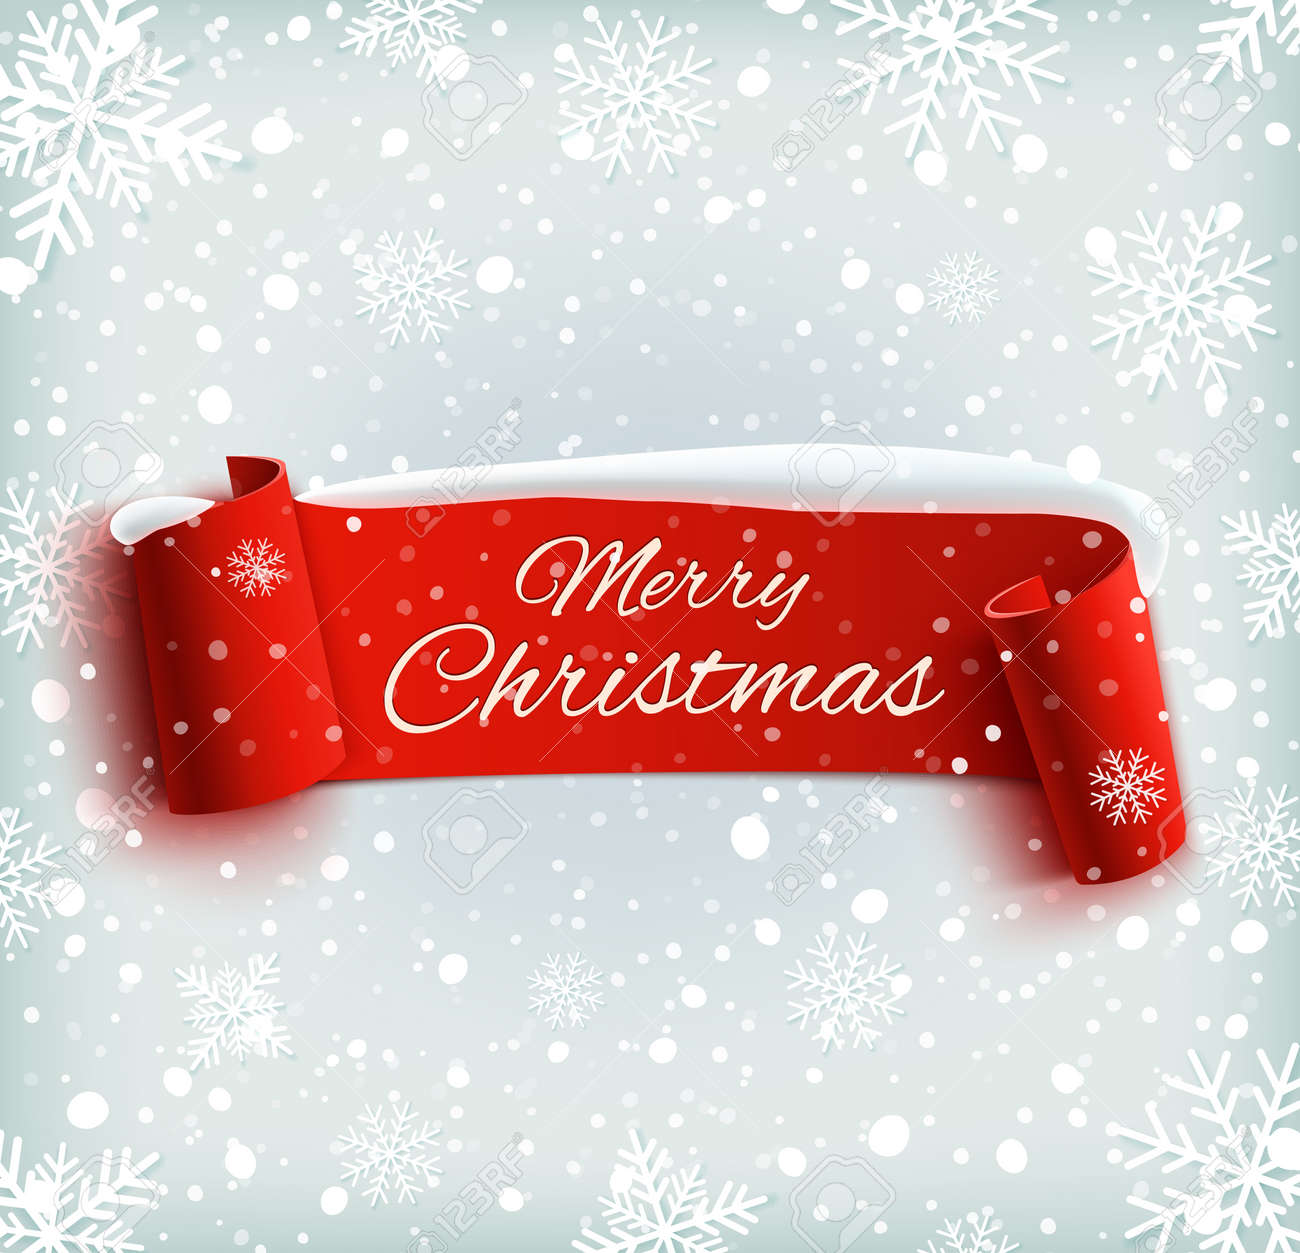 Merry Christmas Celebration Background With Red Realistic Ribbon Royalty Free Cliparts Vectors And Stock Illustration Image 33341518